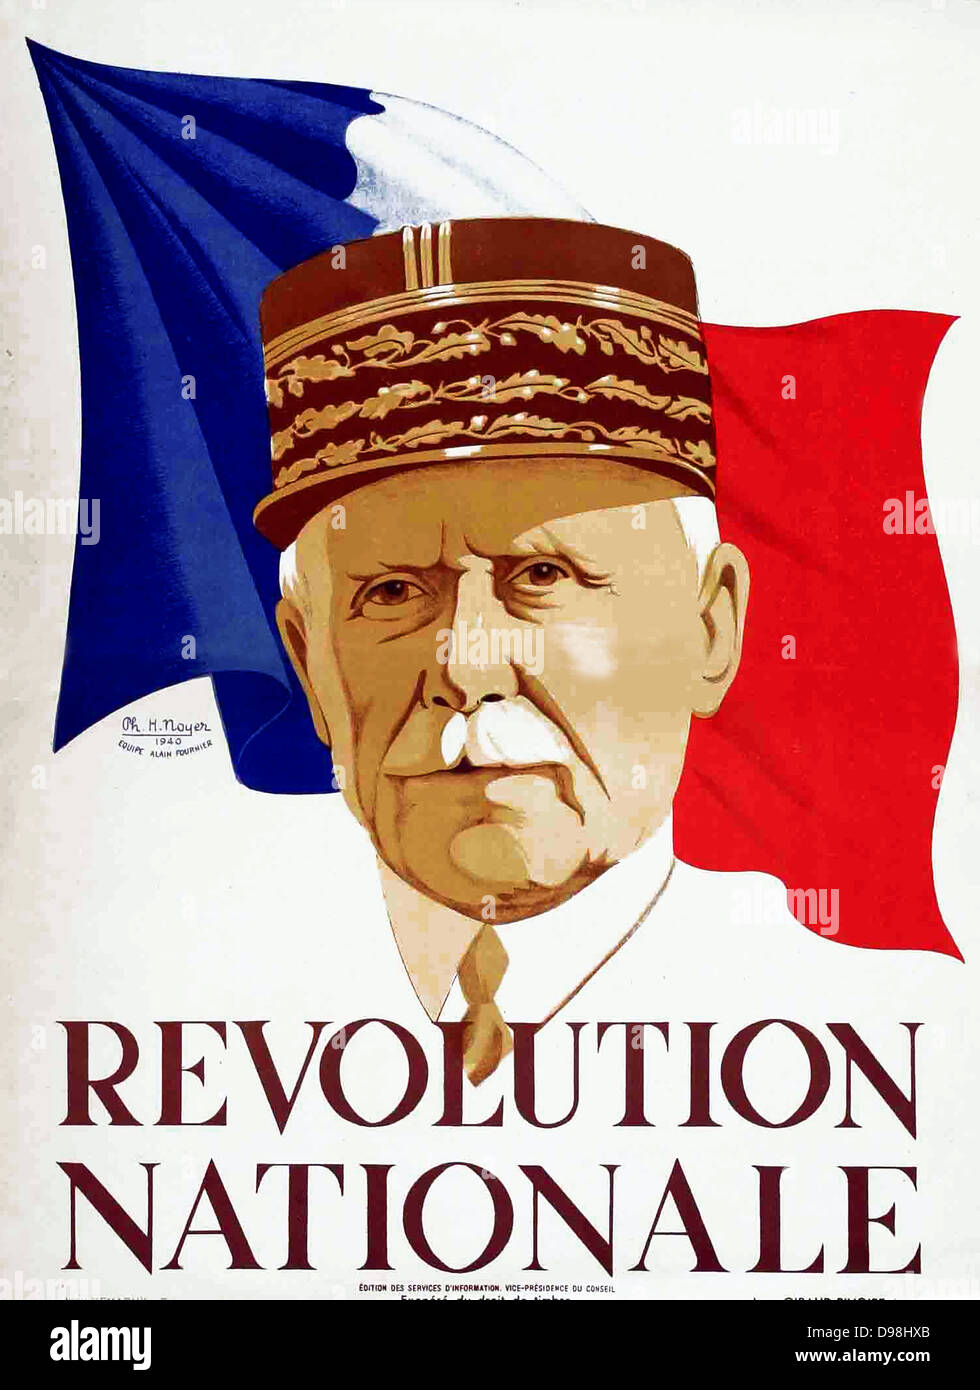 Wartime French Vichy poster showing Marshall Petain. circa 1940-44 - Stock Image